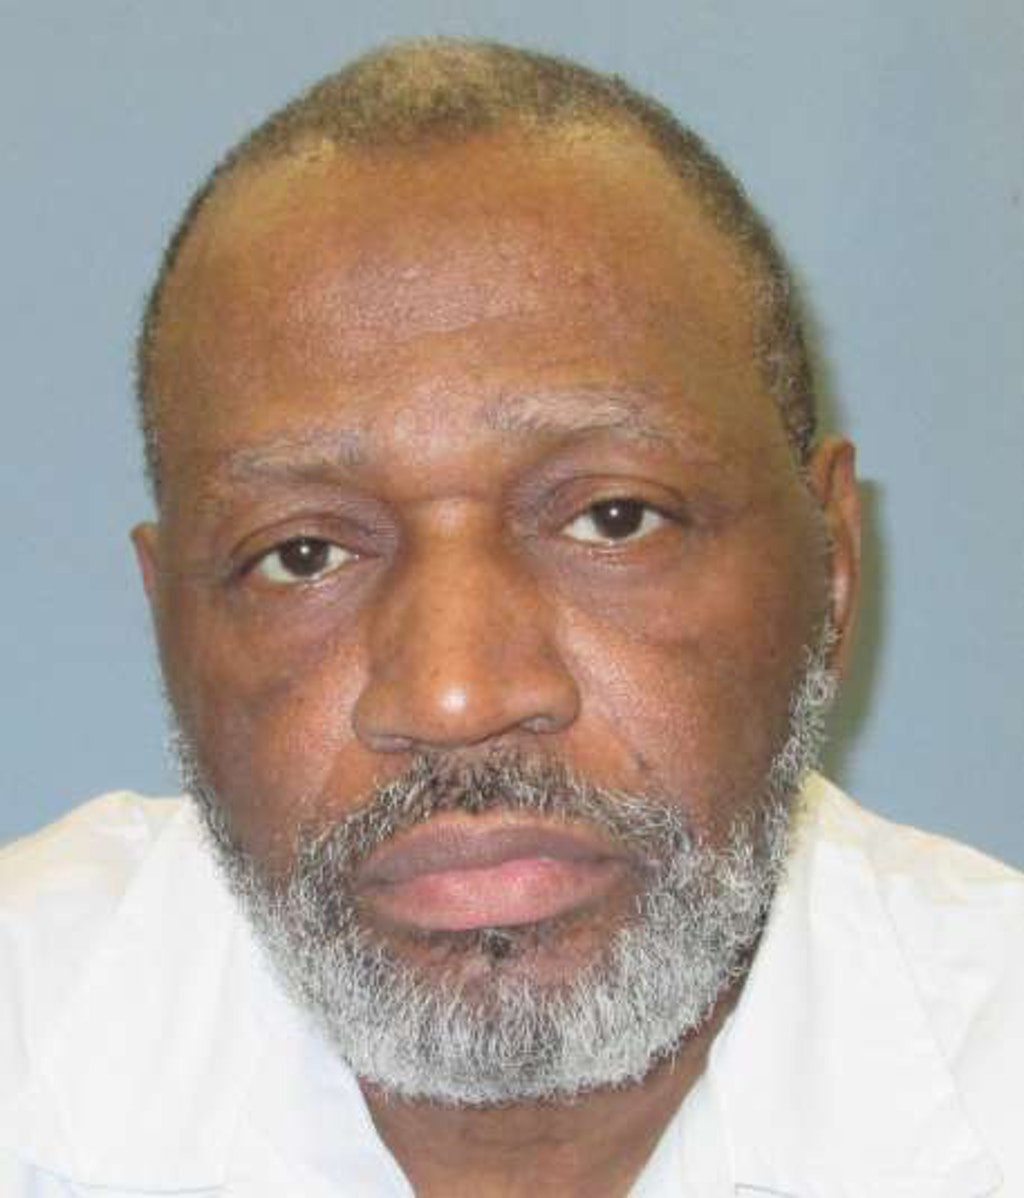 U.S. Supreme Court to Decide if Alabama Can Execute Prisoner With Vascular Dementia and No Memory of the Crime